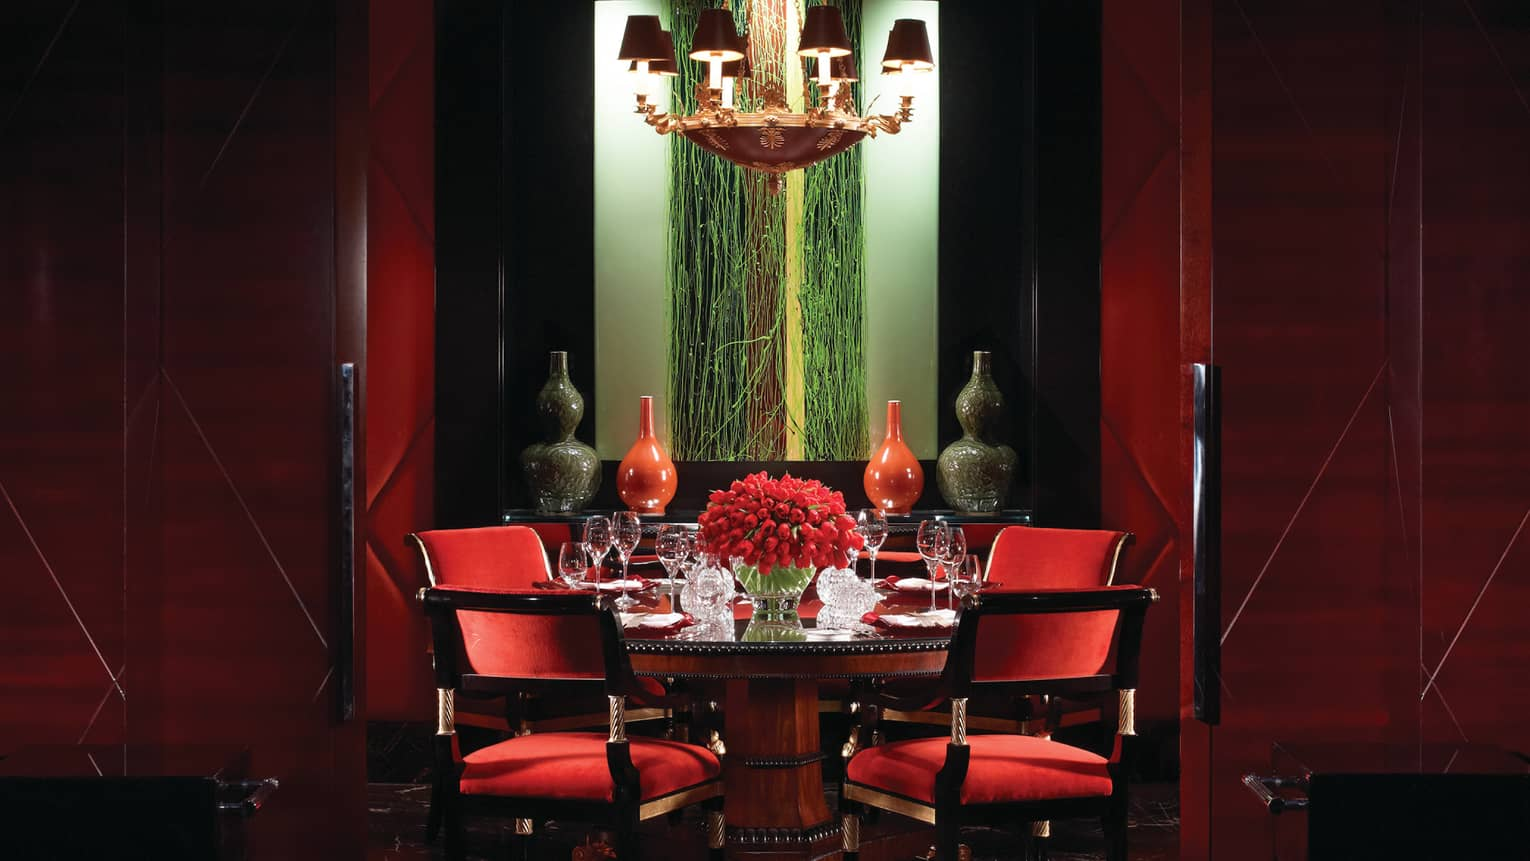 Amaranto restaurant red velvet chairs around round dining table with red tulips, red and black vases